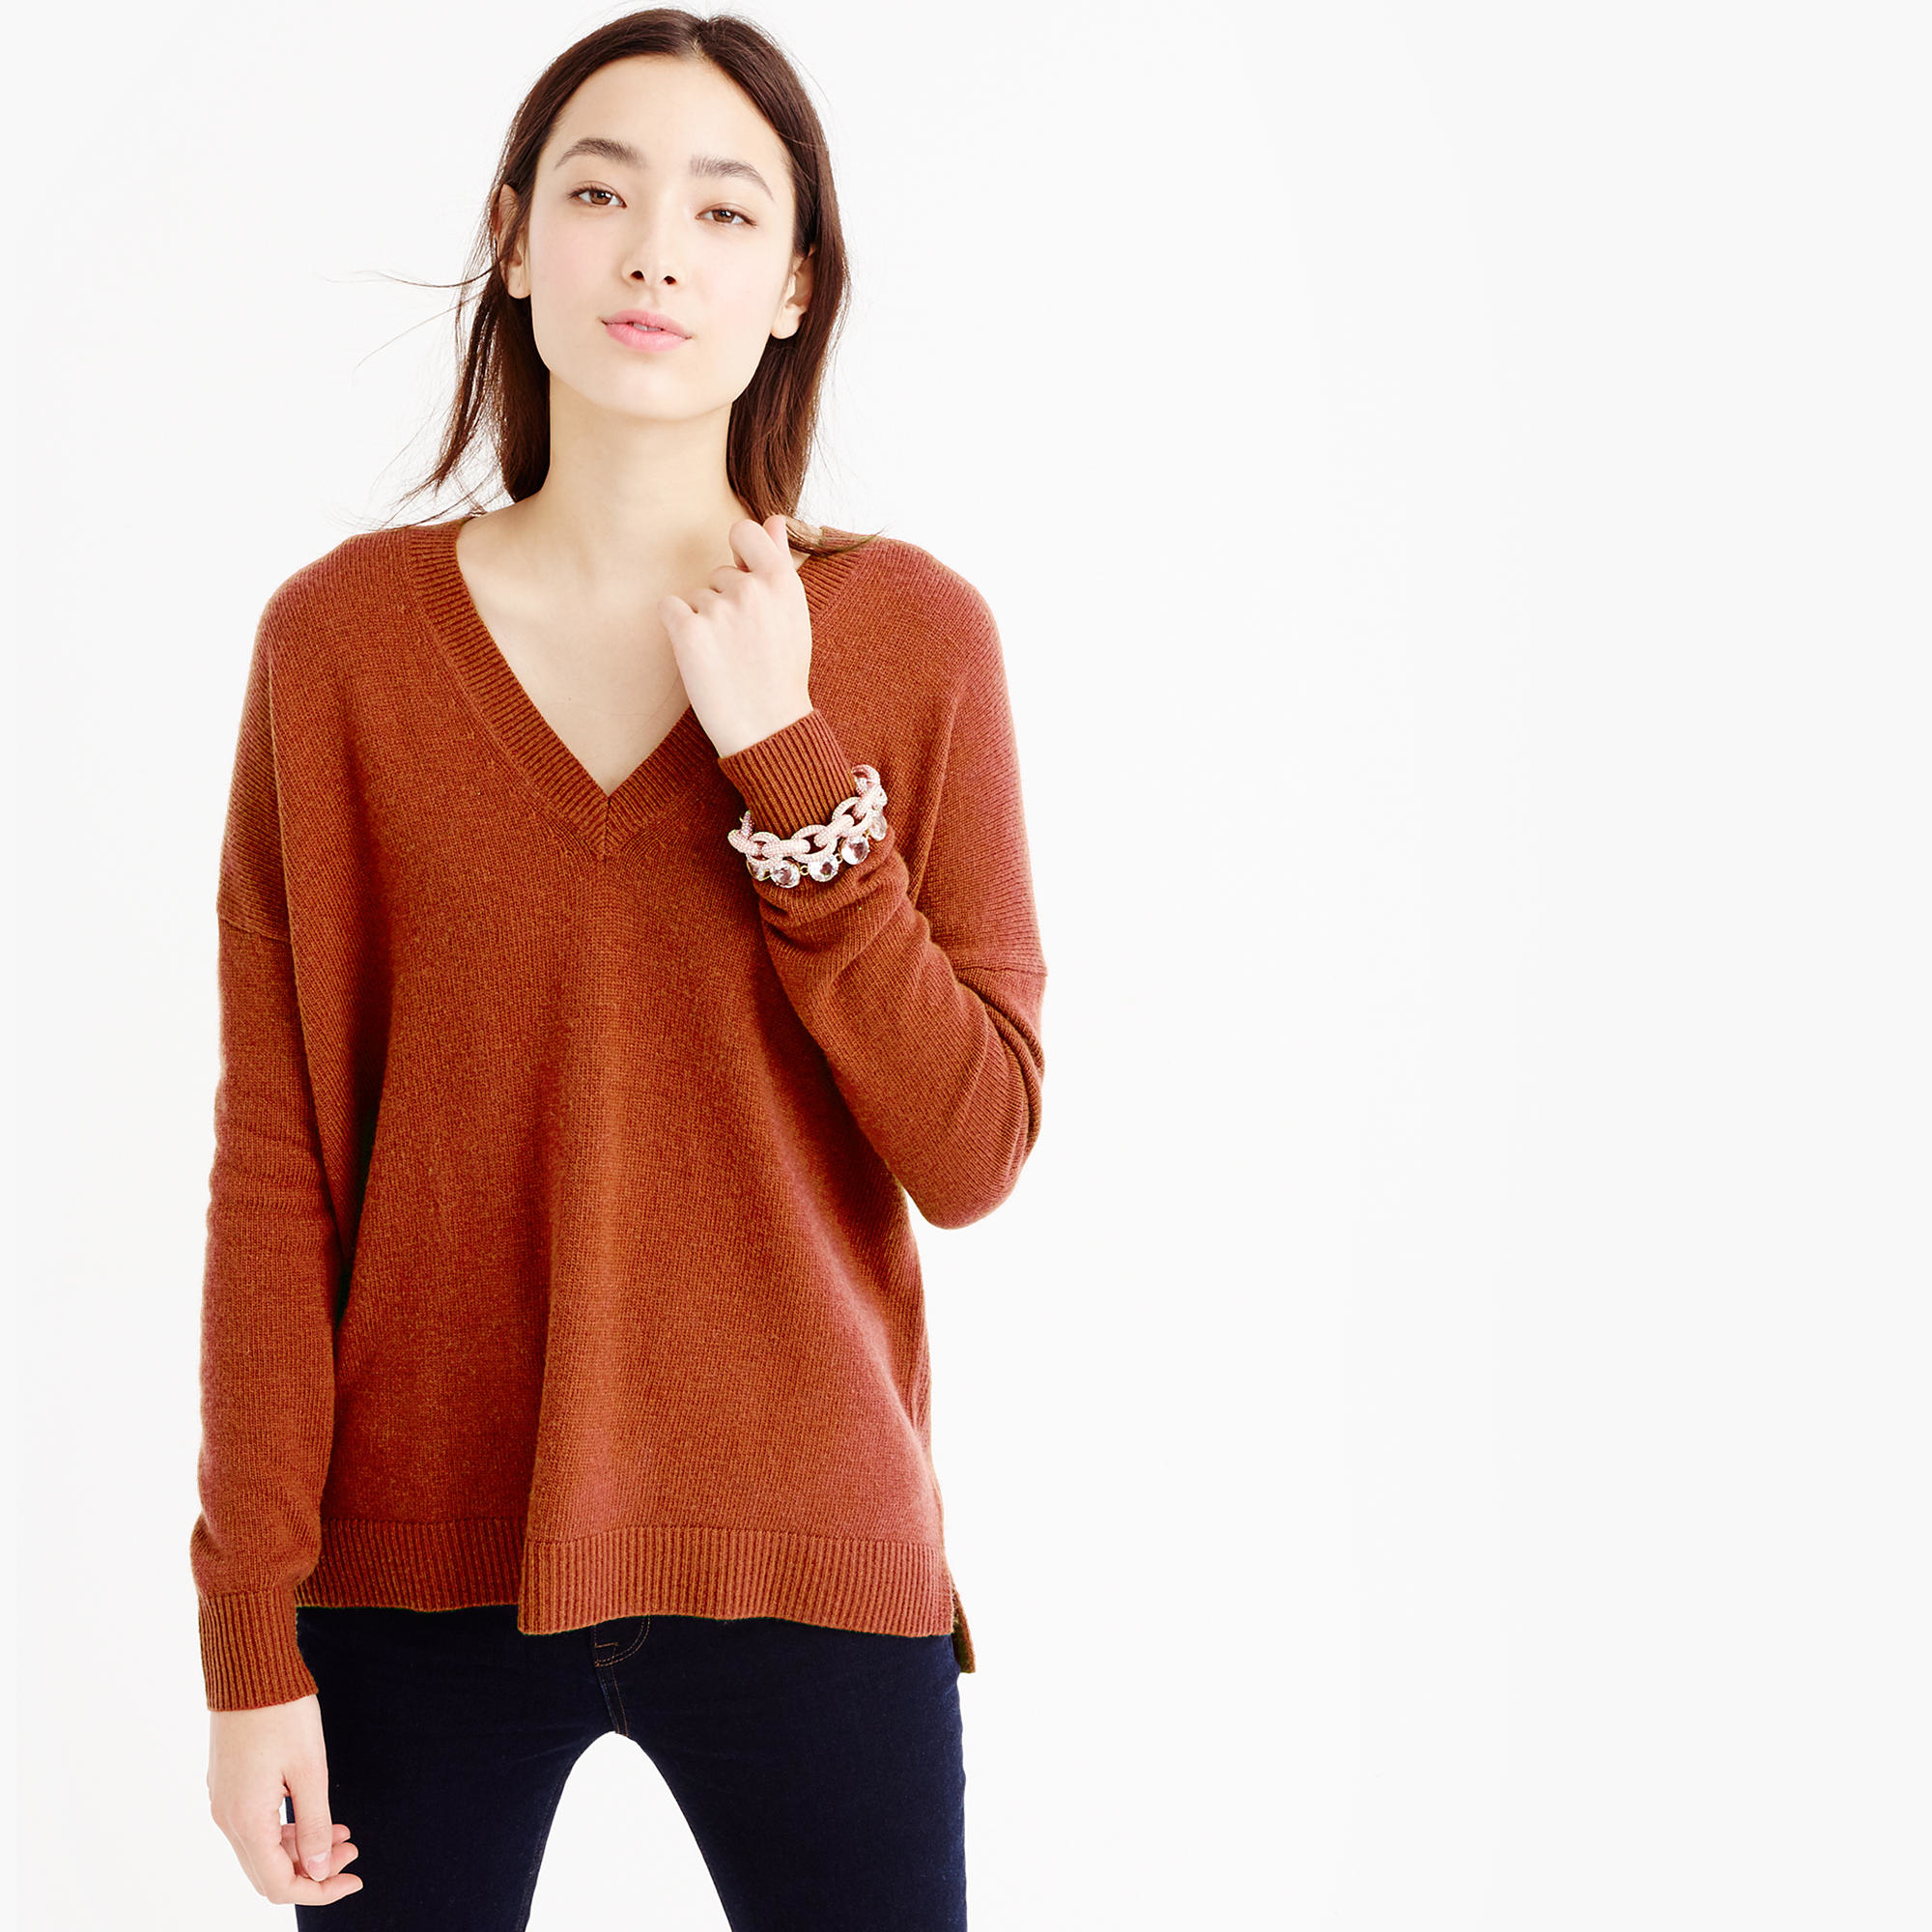 J.crew Petite V-neck Tunic Sweater in Brown | Lyst